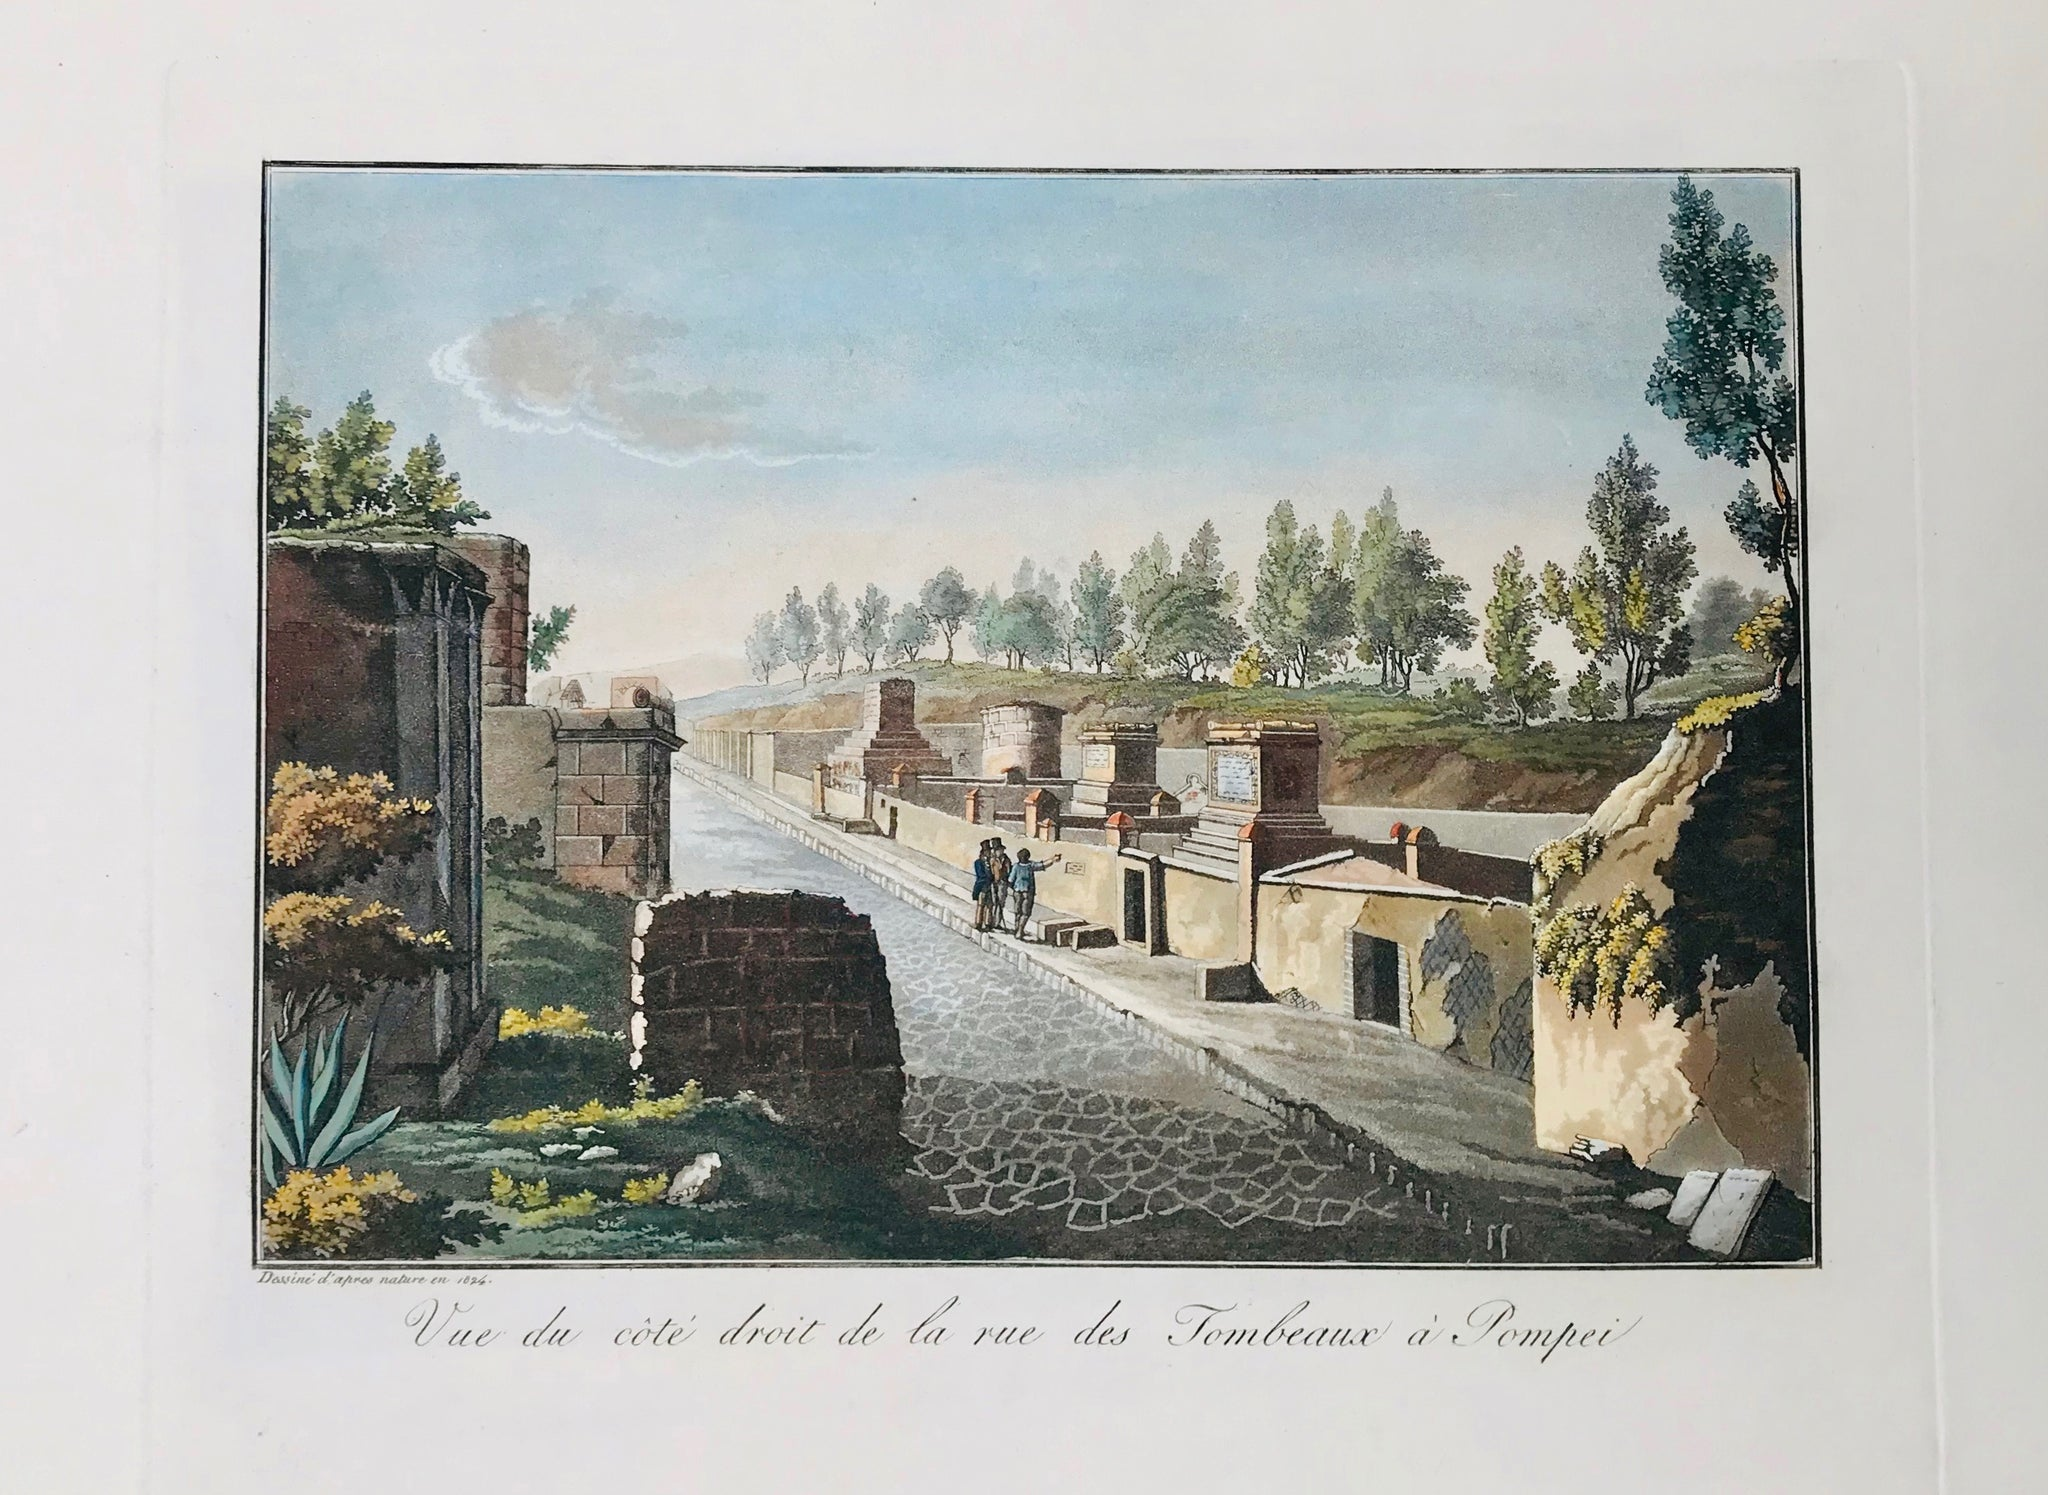 "Vue du côte droit de la Rue des Tombeaux à Pompeii  19.3 x 28 cm ( 7.6 x 11 "")    Aquatints engraved by Paul Fumagalli from 1821-1825  These prints with their velvety aquatint appearance were made to delight our hearts. They portrait, like no others, the elegance of architecture and the luxurious lifestyle of the citizens of the ancient city - until the nearby Vesuvius put an end to it all in a devestating rain of volcanic ashes."